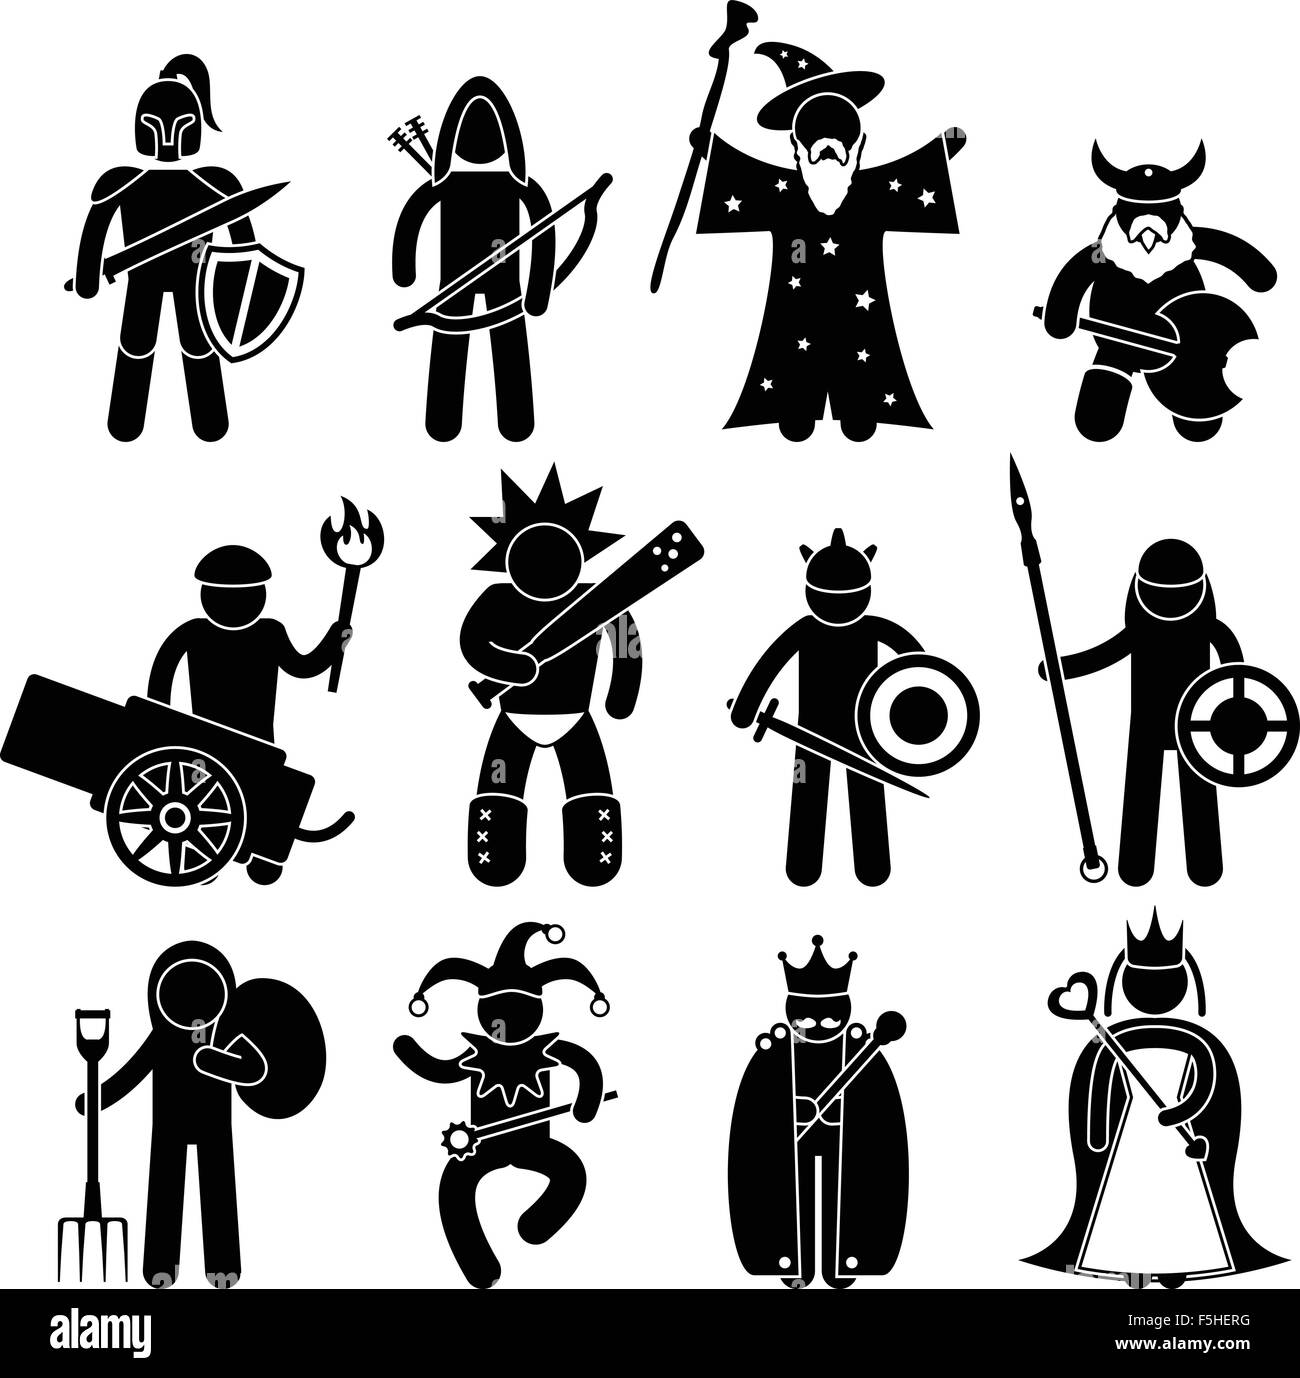 Ancient warrior stock photos ancient warrior stock images alamy ancient warrior character for good alliance icon symbol sign pictogram stock image biocorpaavc Choice Image